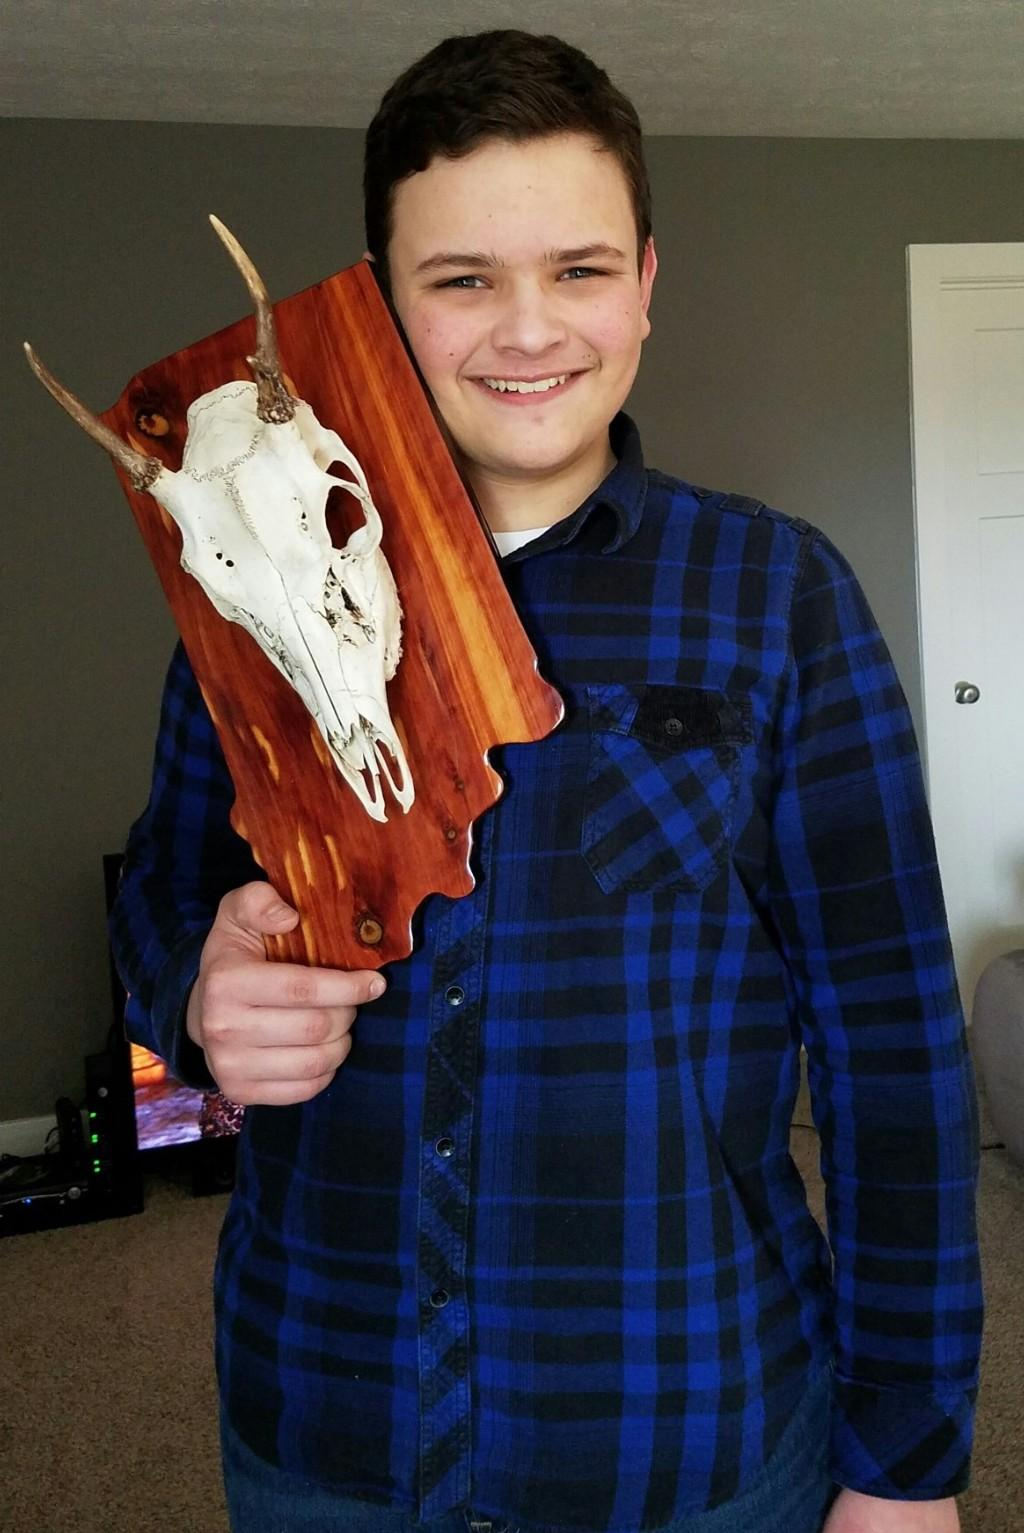 Student with skull on wood.